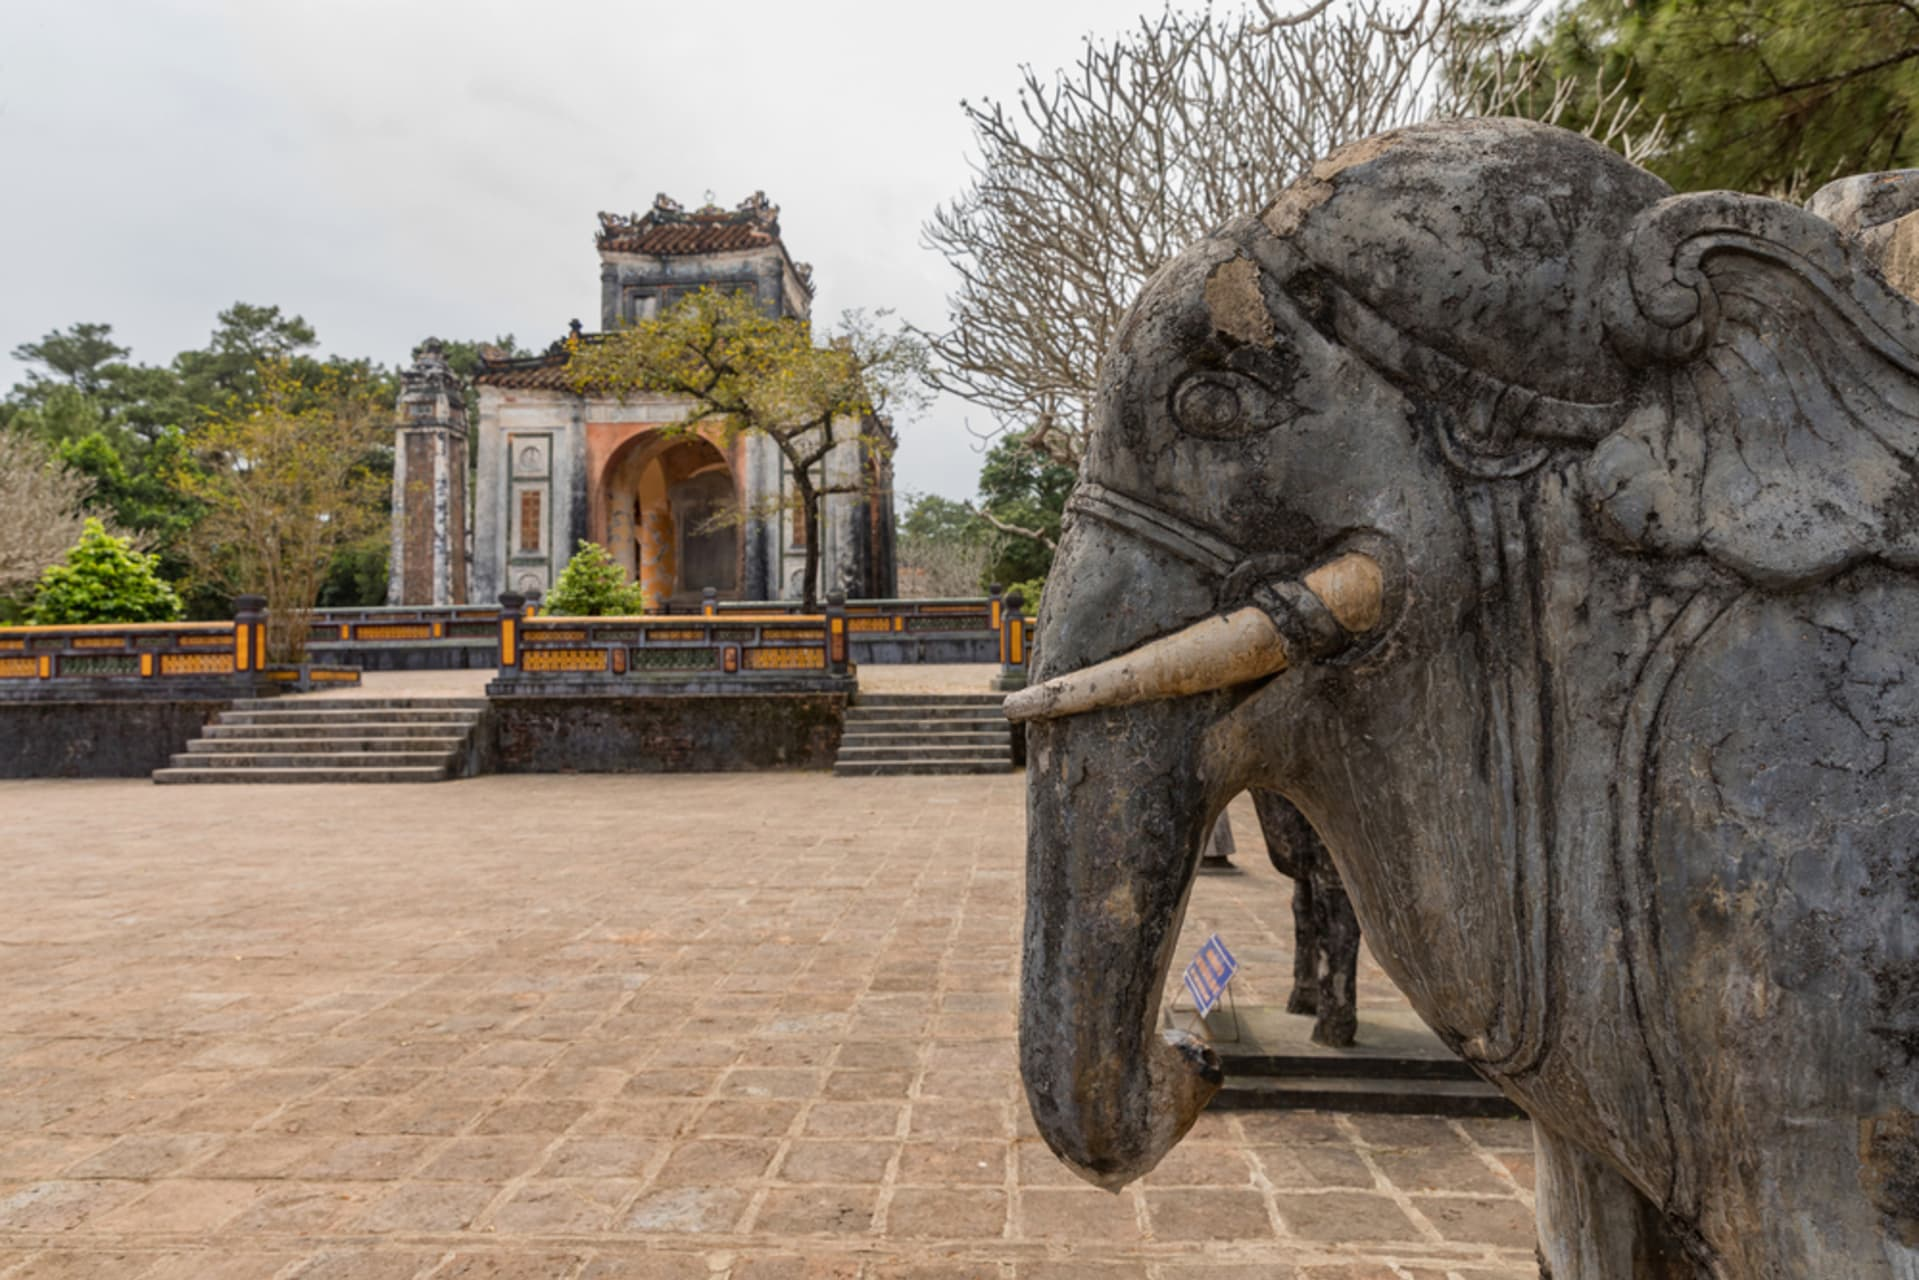 Hue - Discovering Huế - Day 4: Emperor Mausoleum & Insight into The Nguyễn Dynasty